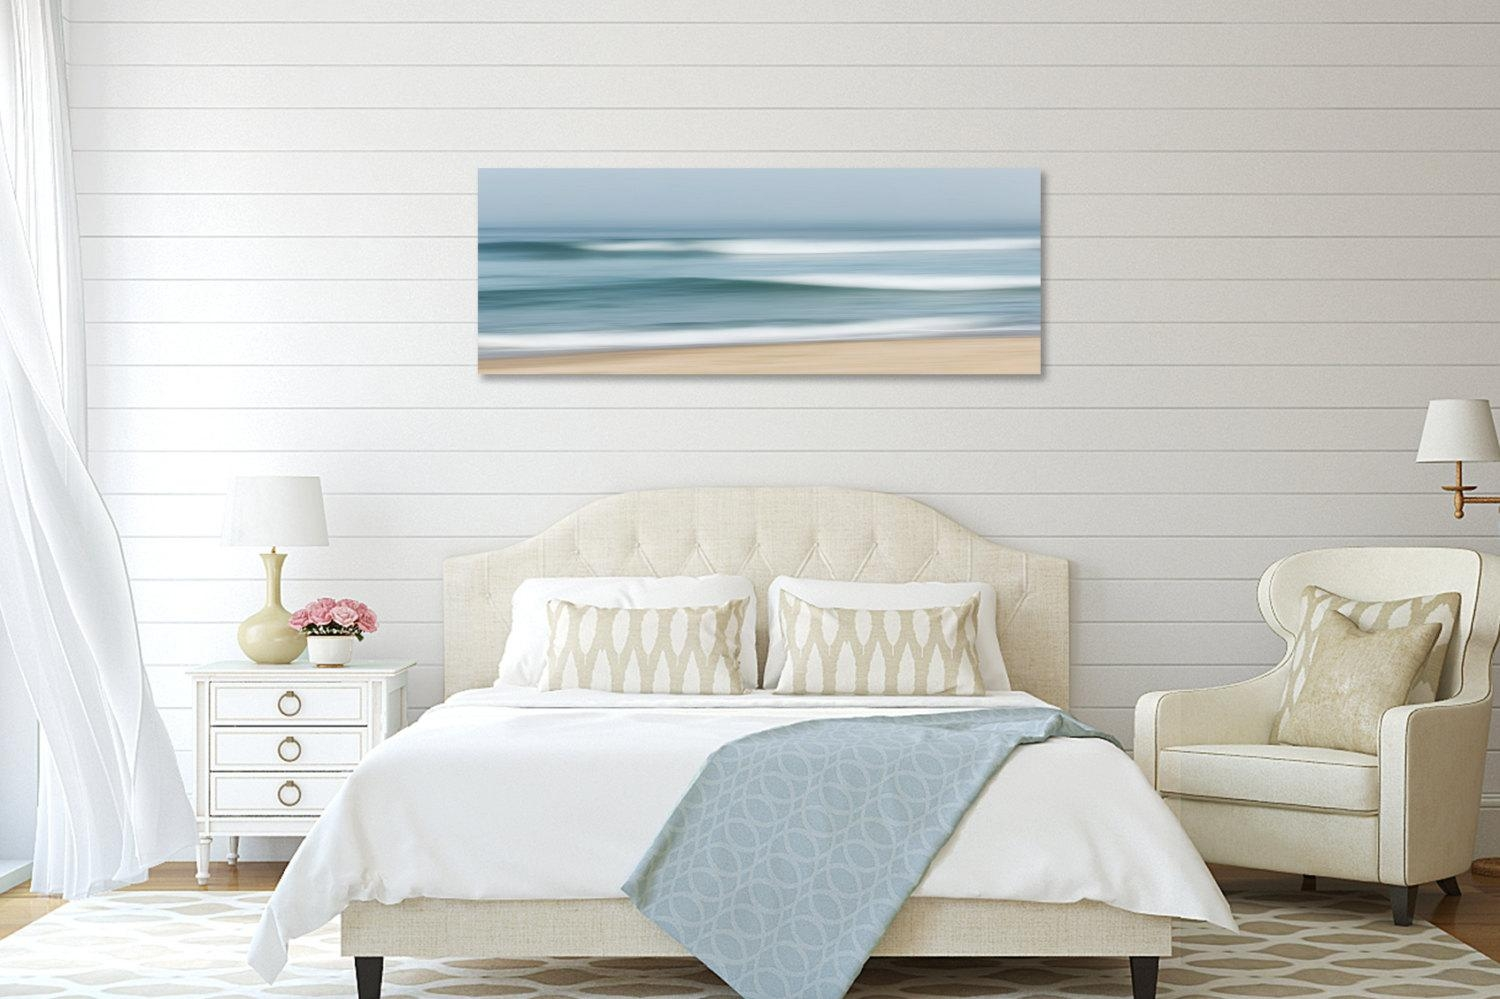 Large Abstract Beach Canvas Wall Art Ocean Seascape Throughout Coastal Wall Art Canvas (Image 11 of 20)